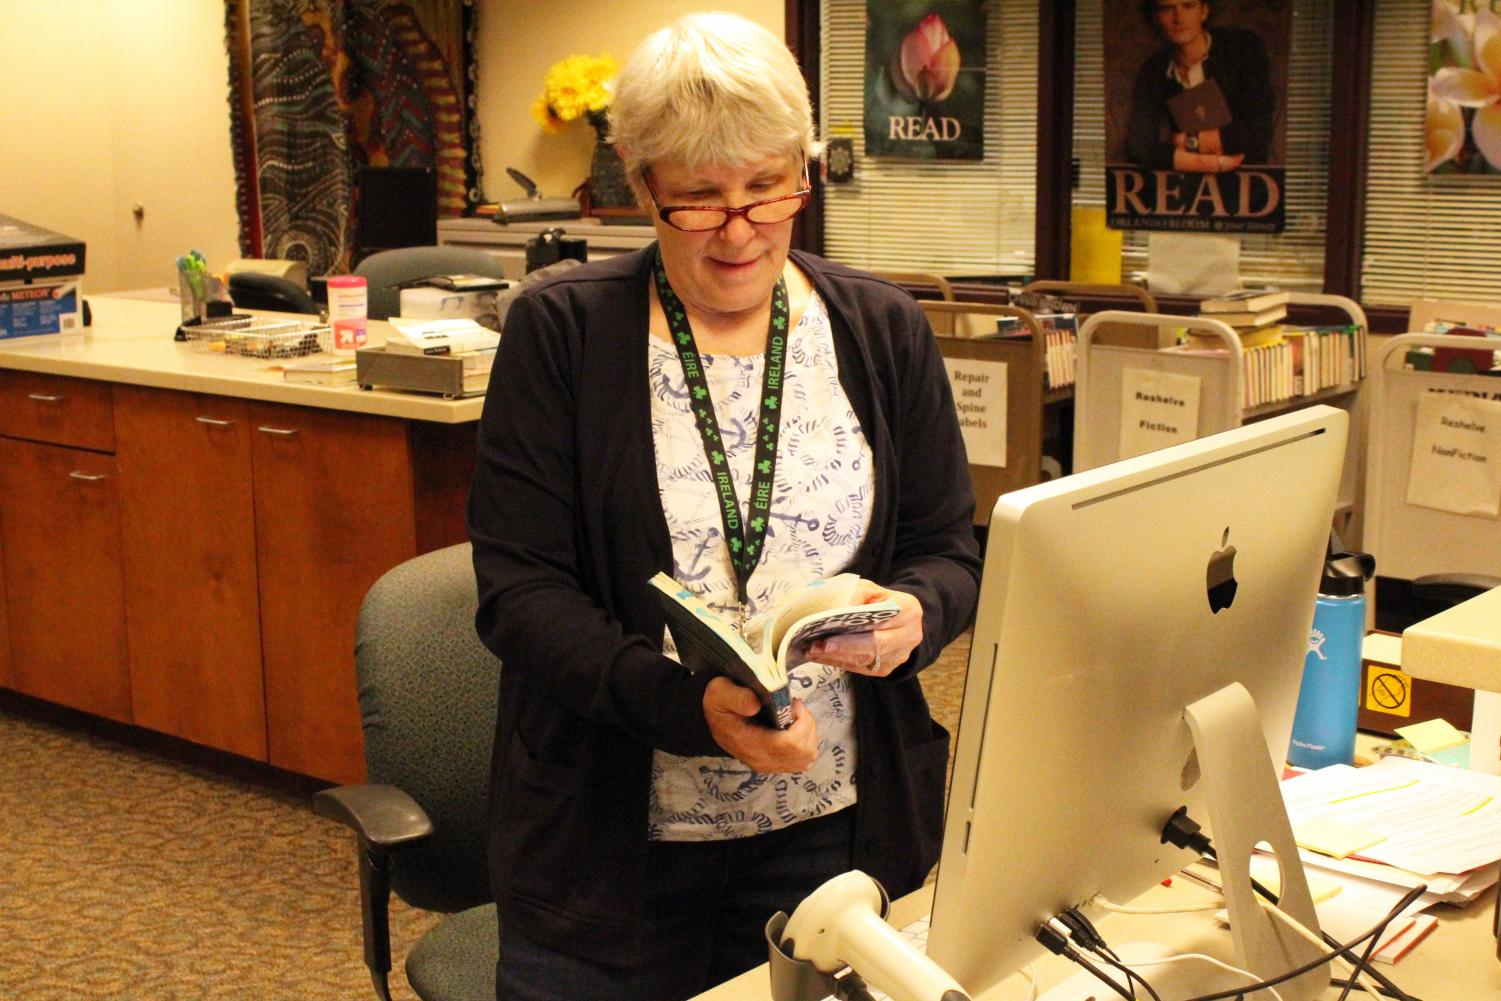 Librarian Ellen George goes through a book making sure everything is in good condition. You can find Ms. George in the Media Center at the front desk.